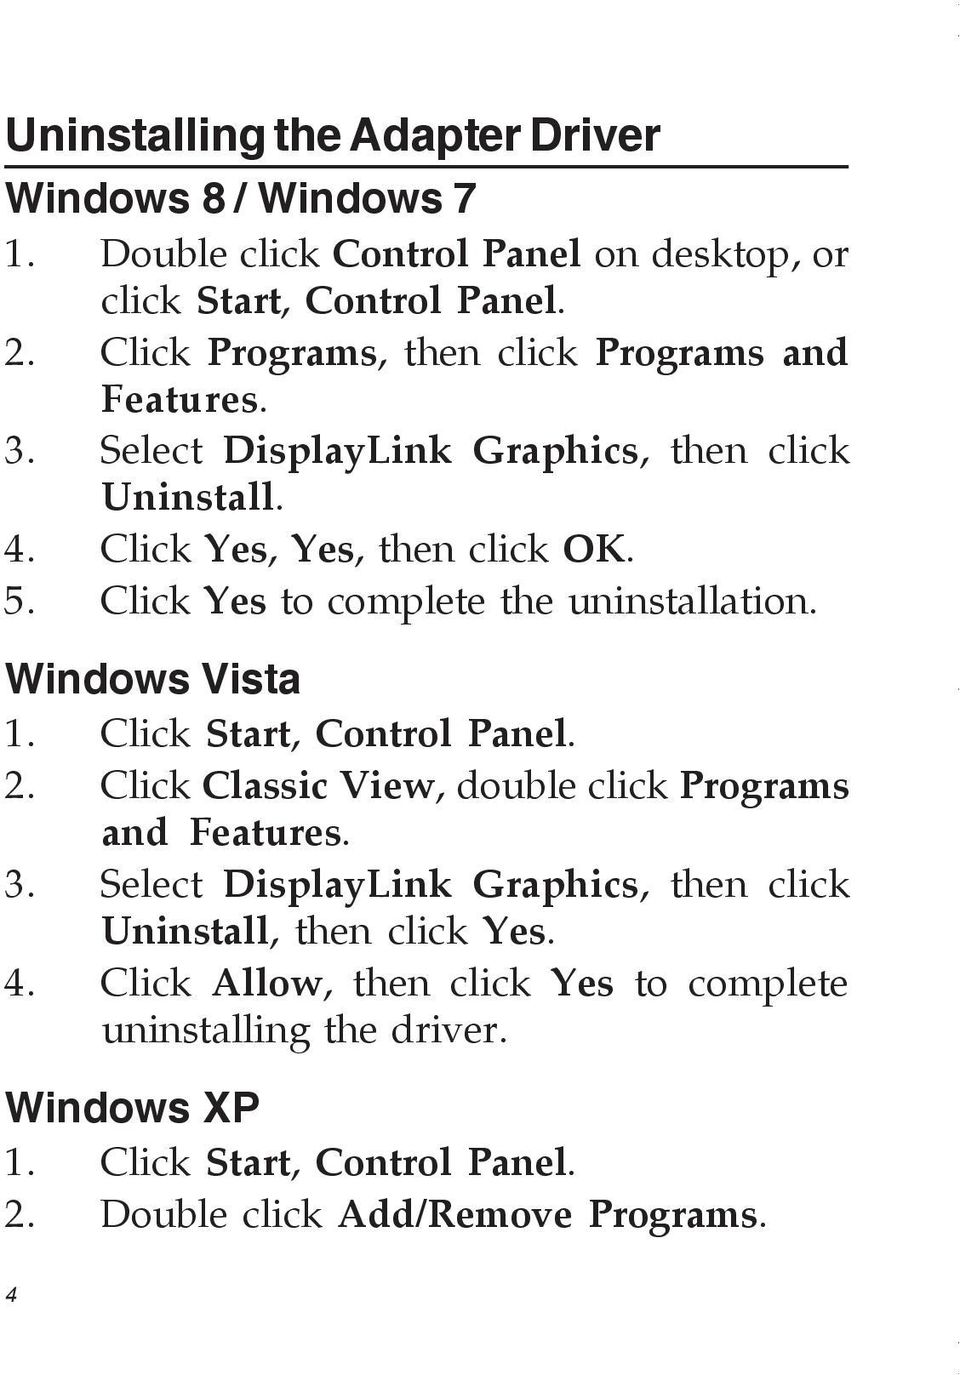 Click Yes to complete the uninstallation. Windows Vista 1. Click Start, Control Panel. 2. Click Classic View, double click Programs and Features. 3.